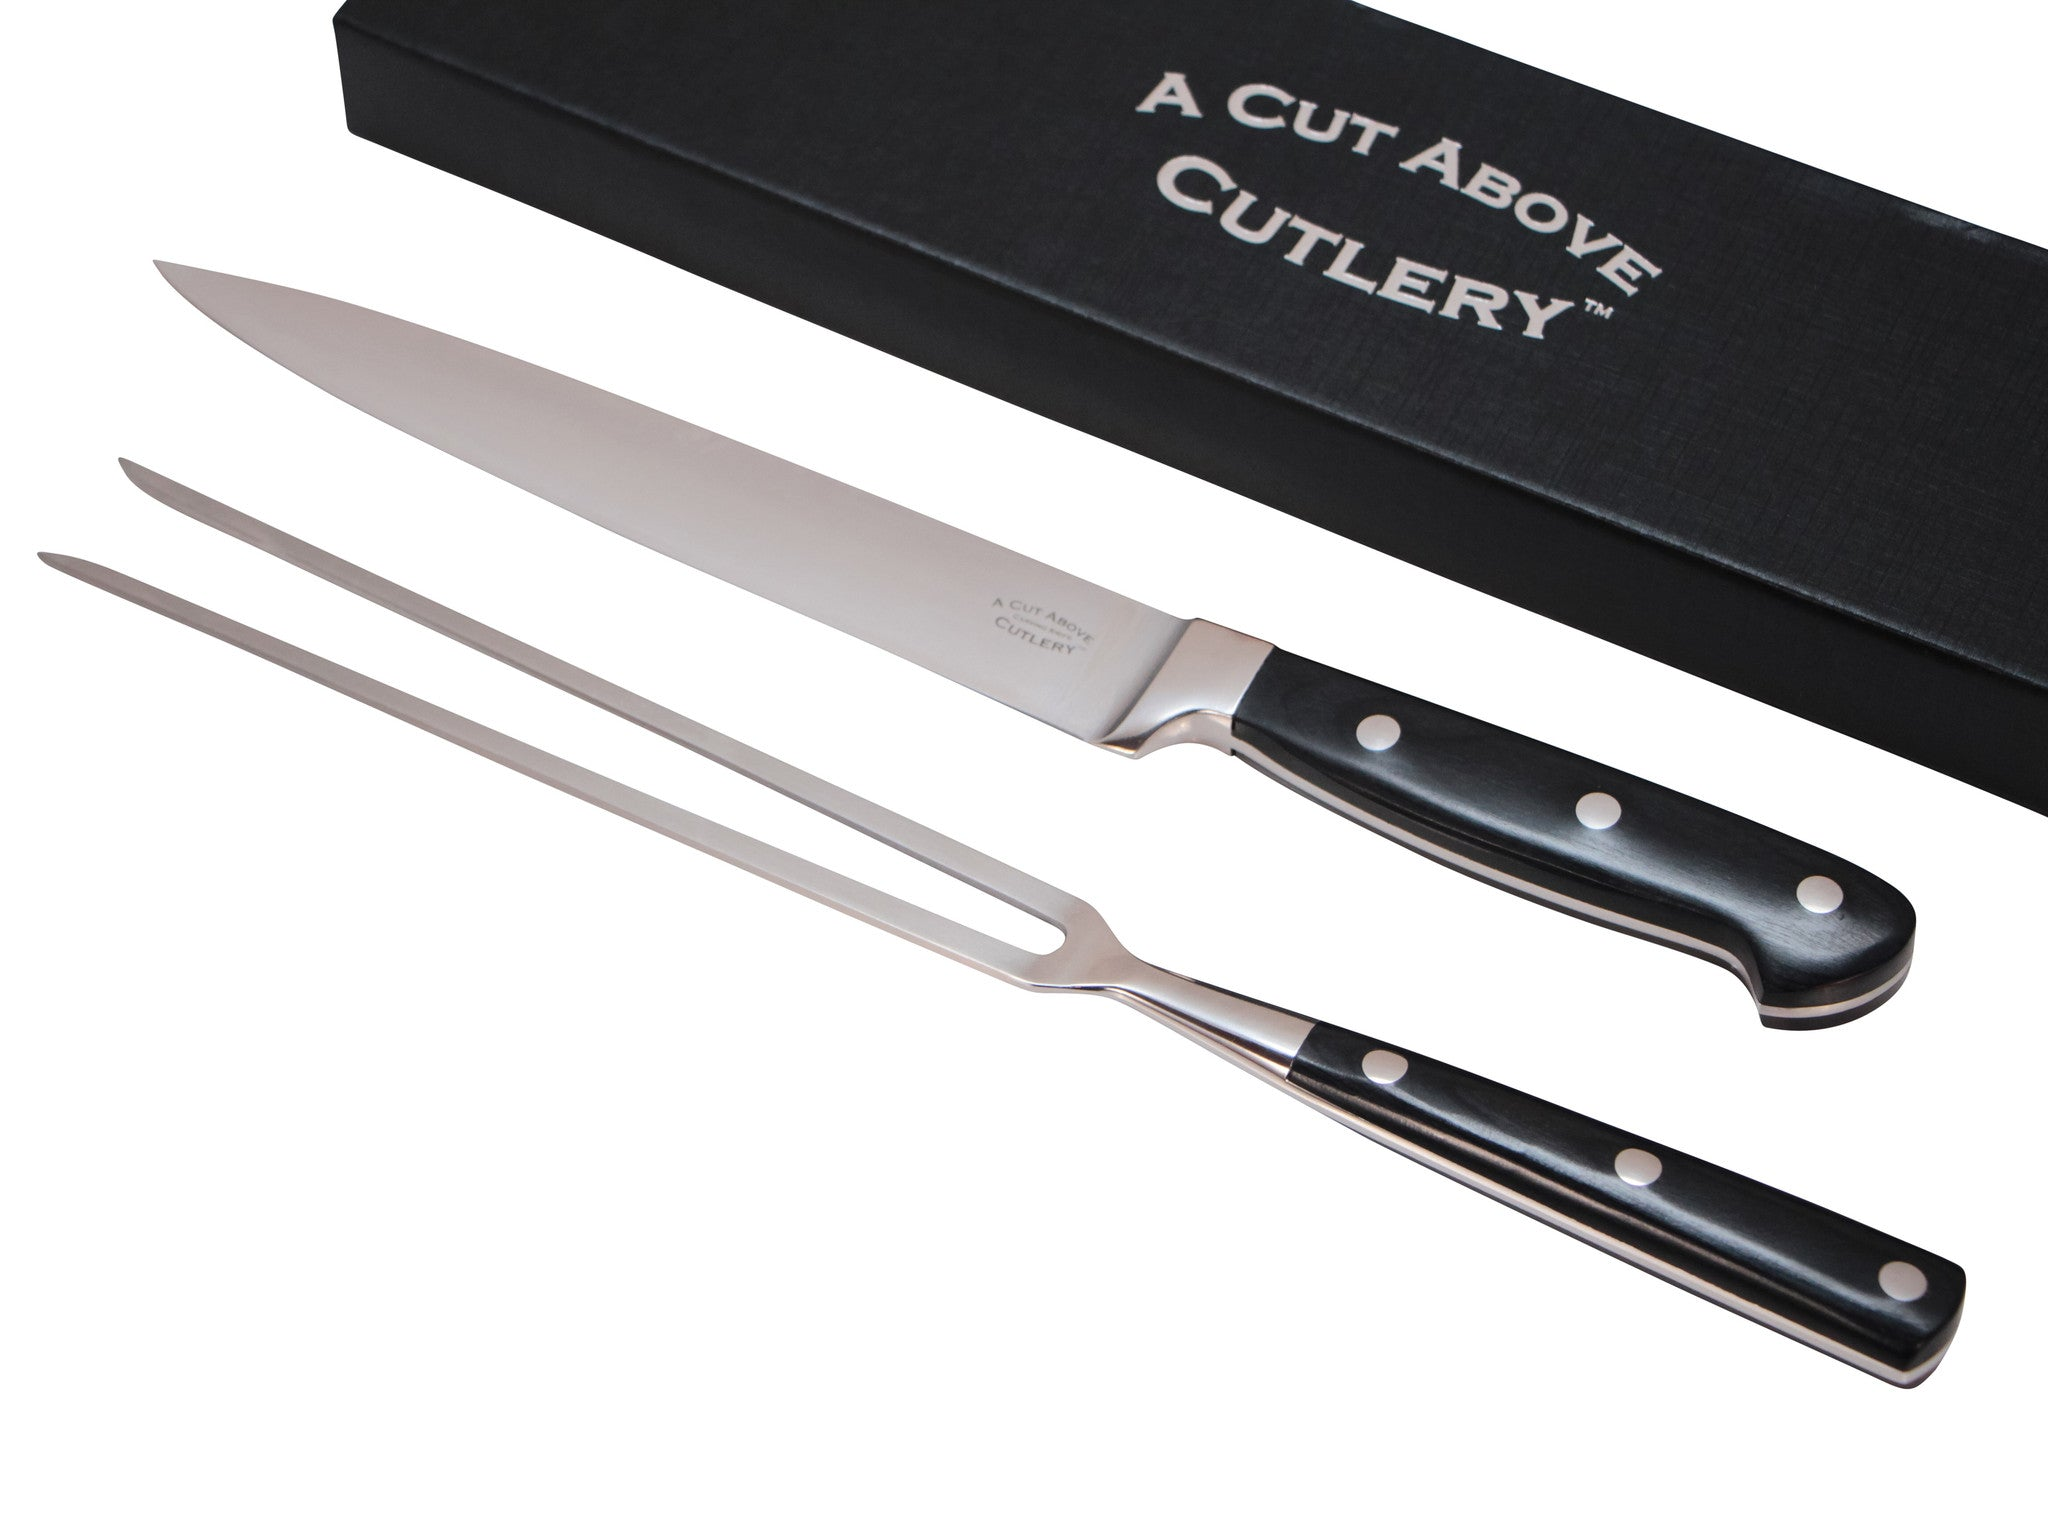 8 Inch Stainless Steel Carving Knife Set